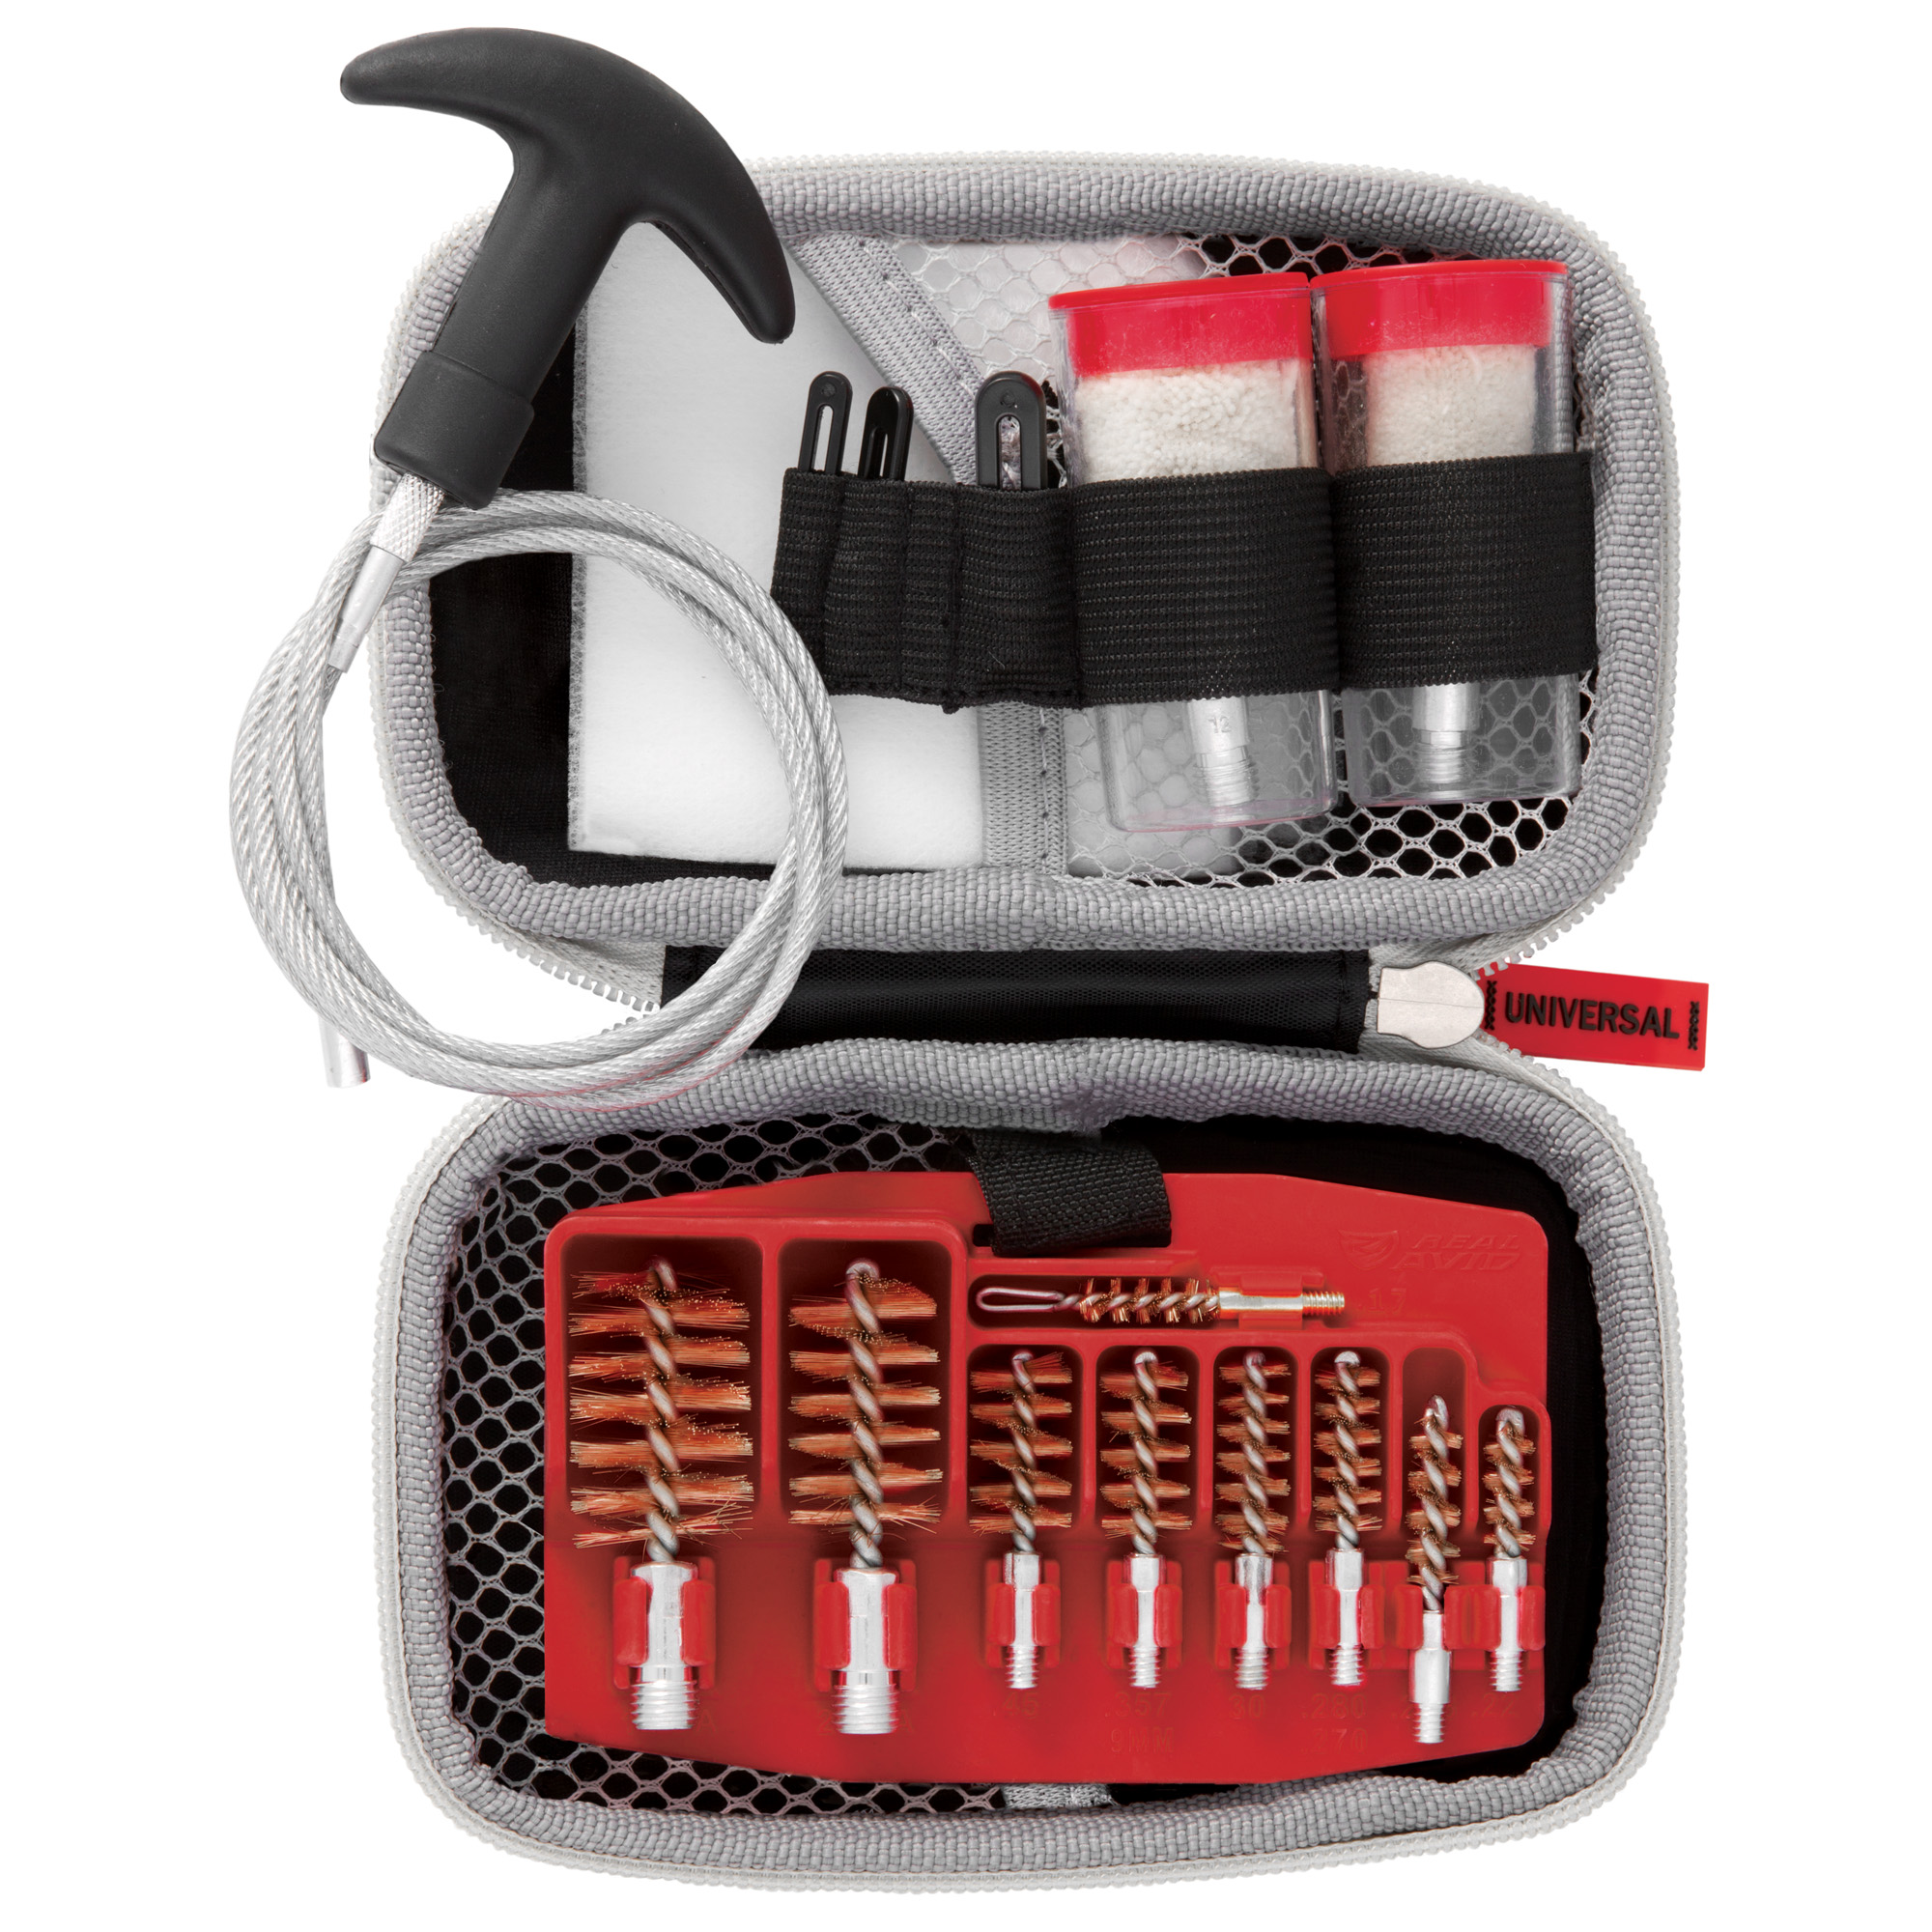 "The Gun Boss pull-through system cleans and protects firearms by pulling fouling out of the muzzle"" rather than back into the chamber and action. It comes in a compact"" weather-resistant"" molded case. Non-marring aluminum connectors and adapters"" phosphor bronze brushes"" and coated steel cables protect your bores. Every tool snaps securely into place on the high-quality"" oil-resistant tray. Fits .17 - .45 cal."" 20 ga. & 12 ga."